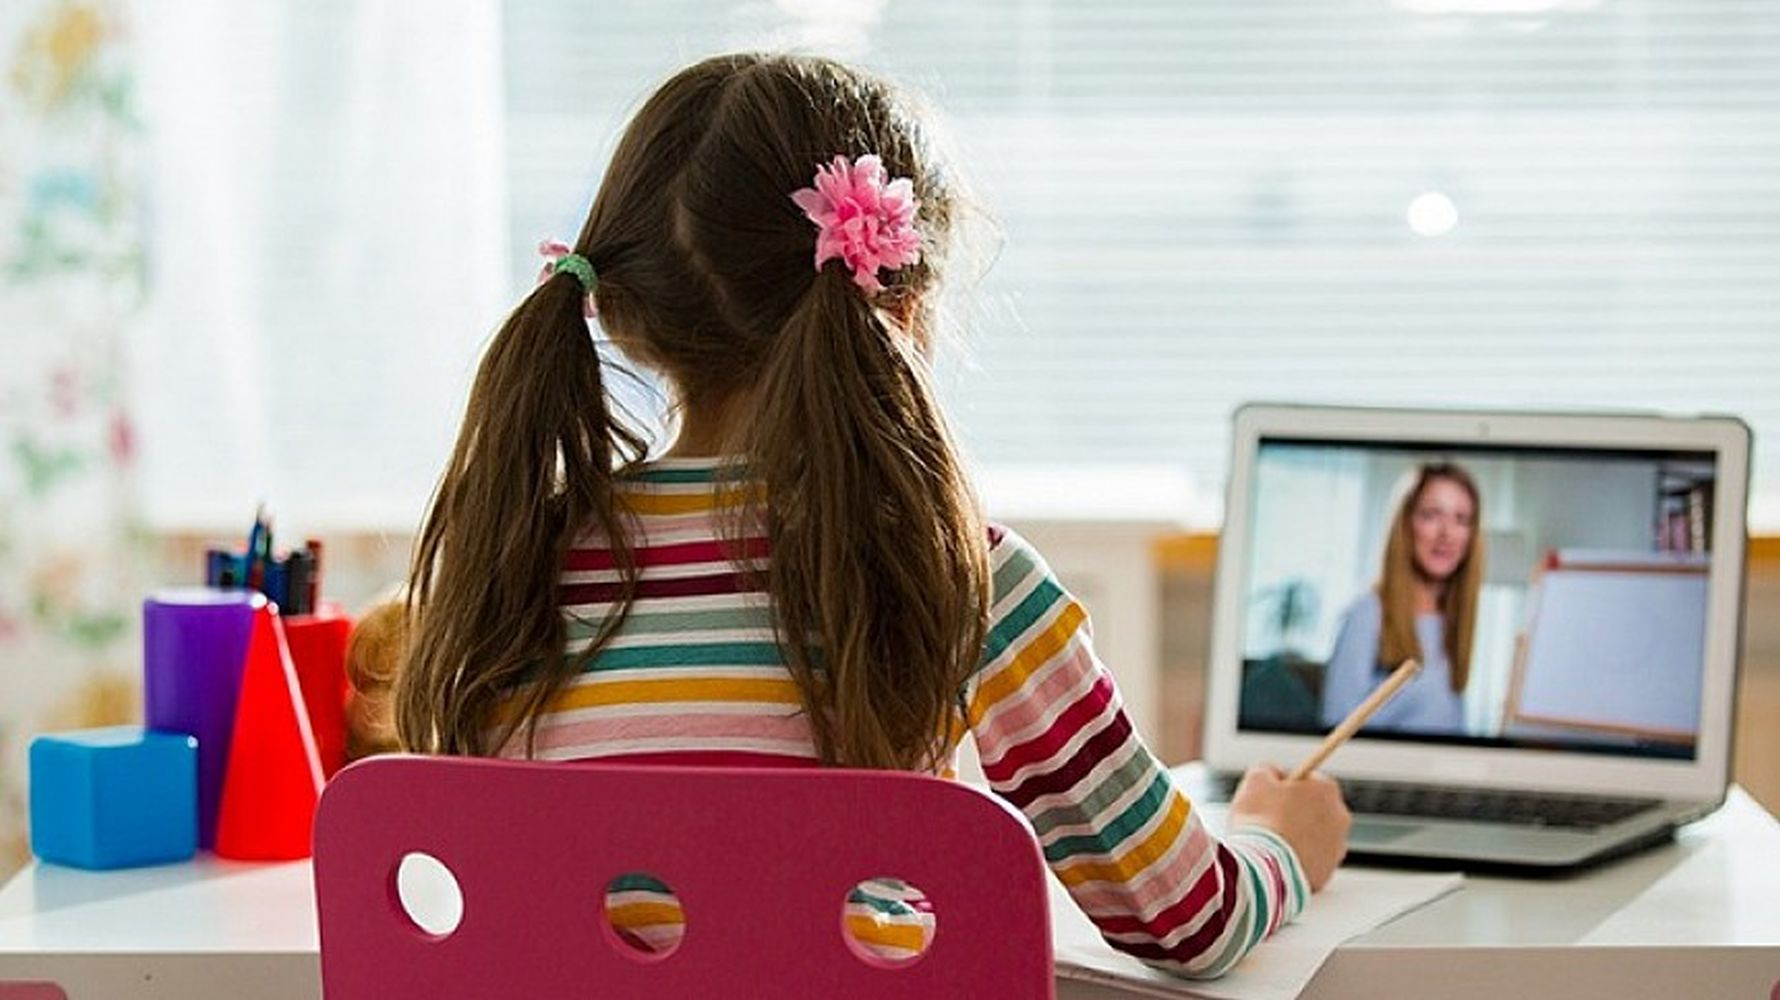 Will distance education continue? When will face-to-face education begin?